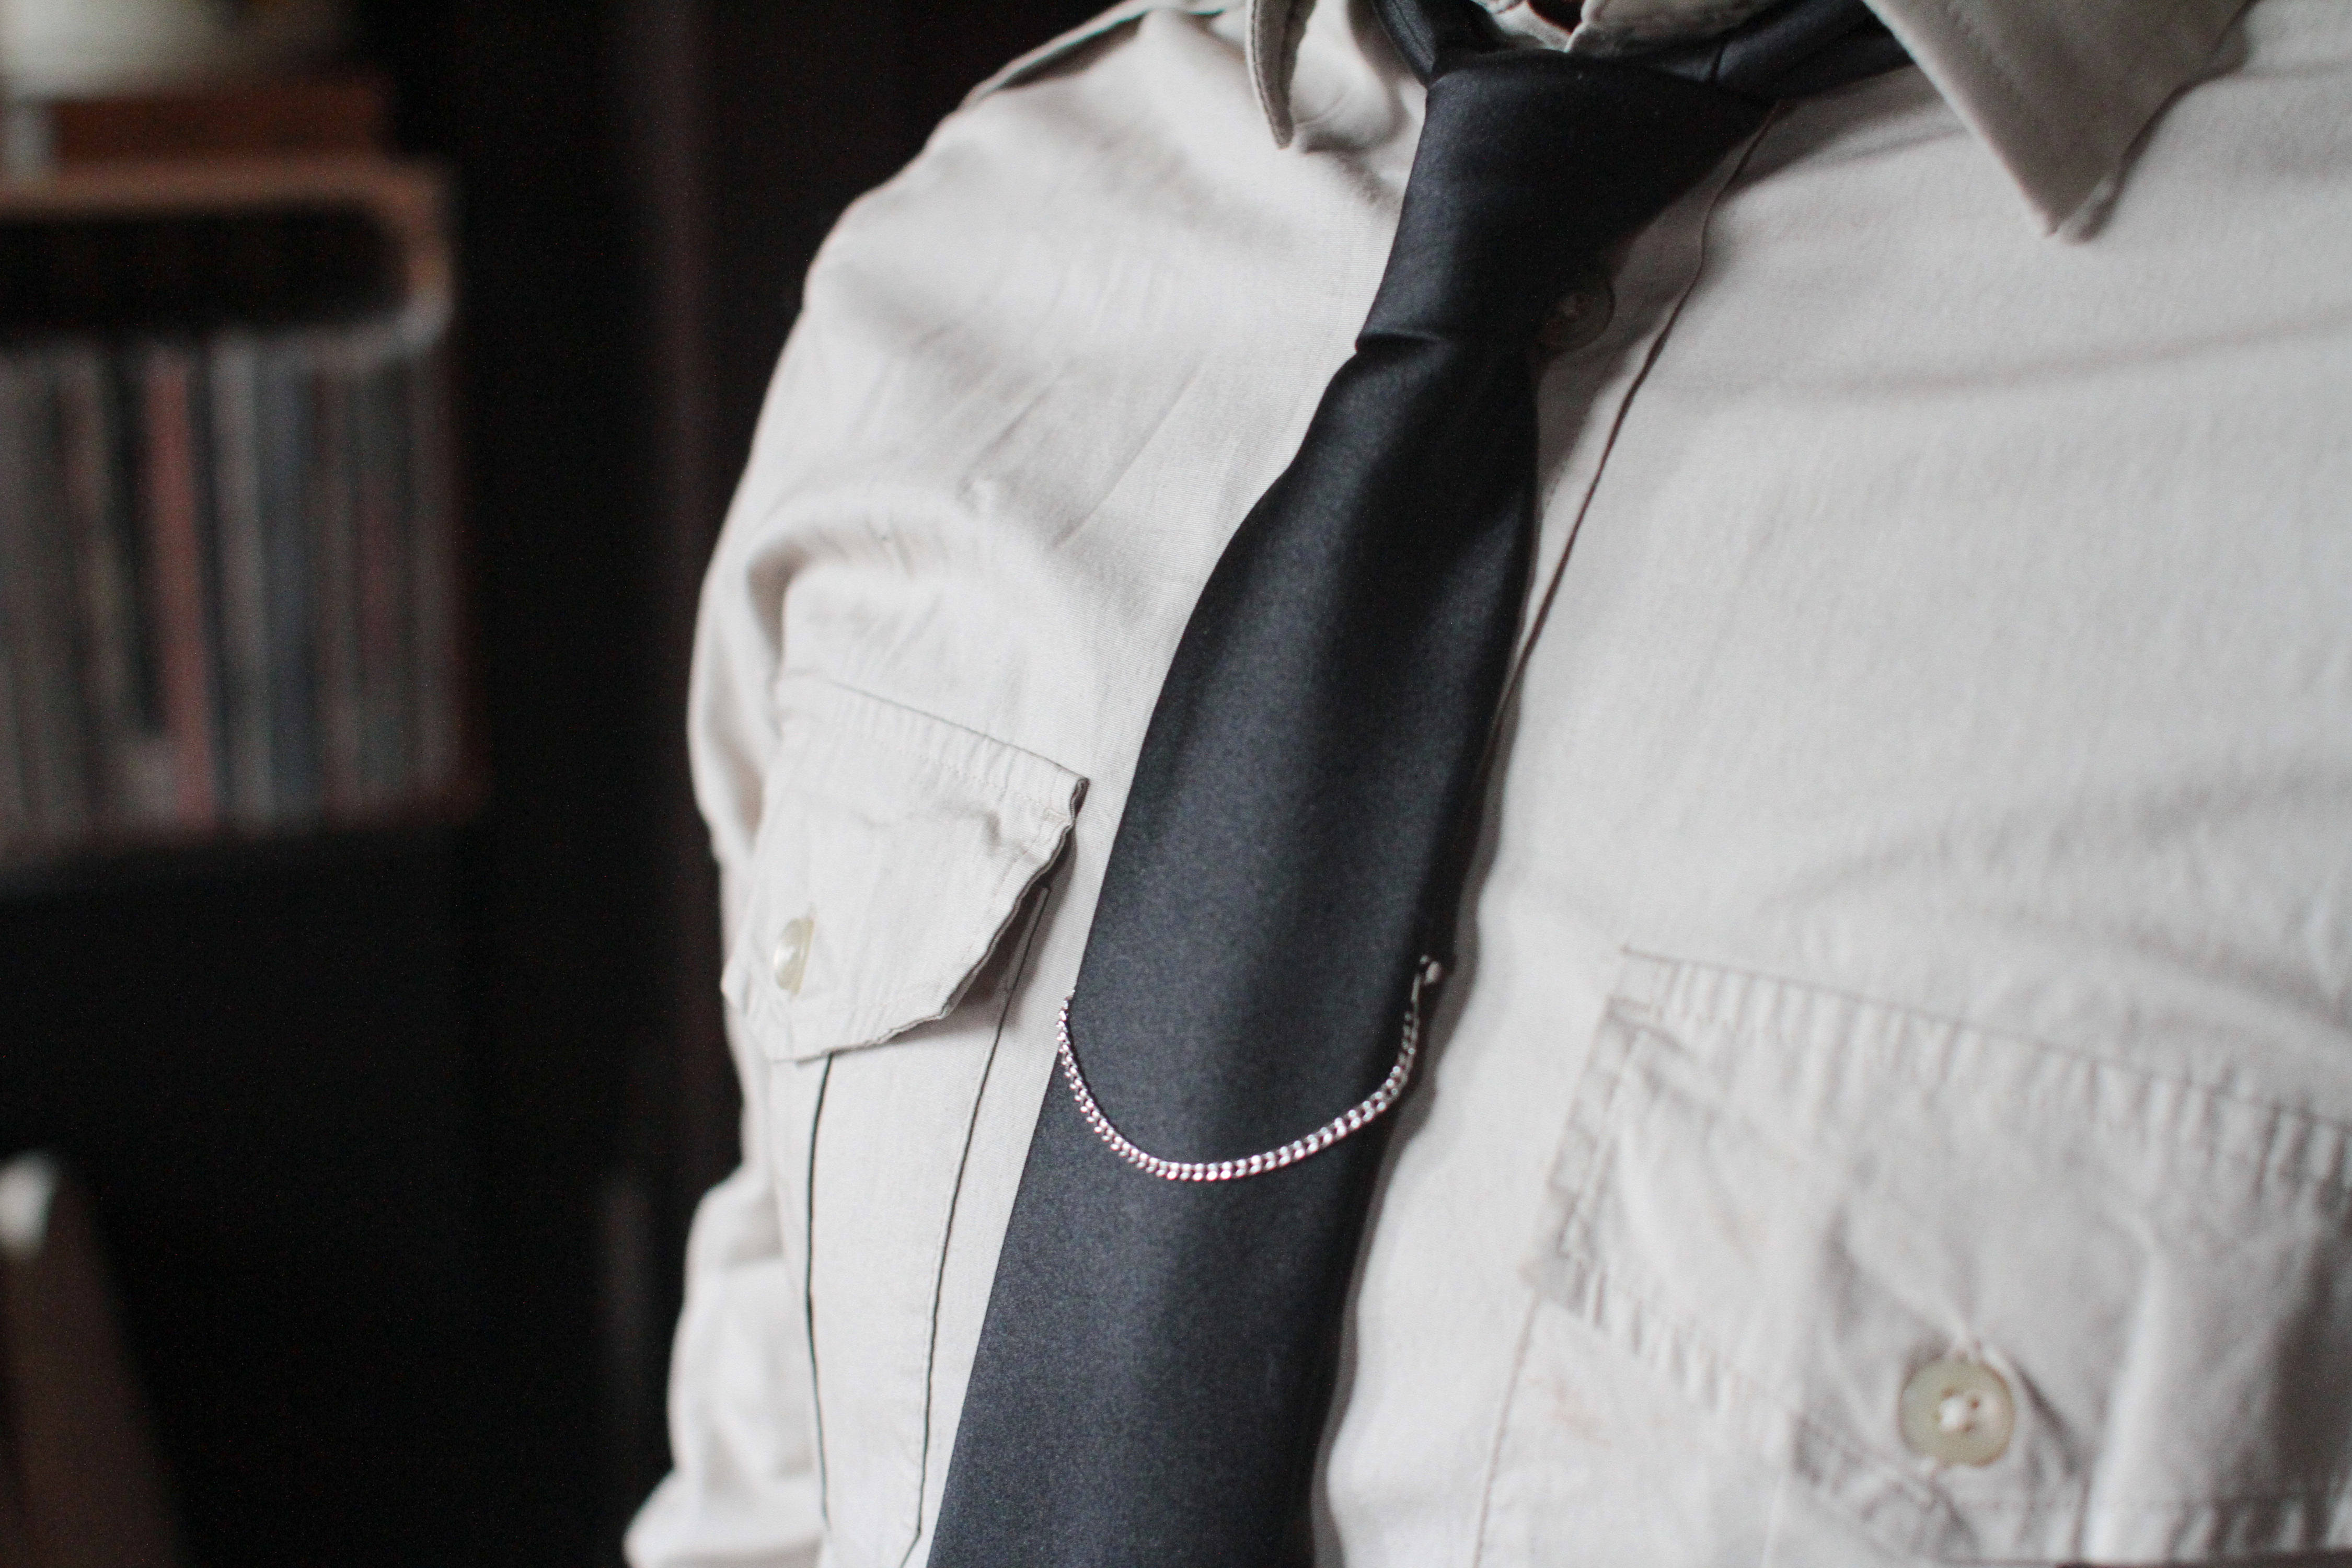 How to wear tie chains our everyday life ccuart Image collections